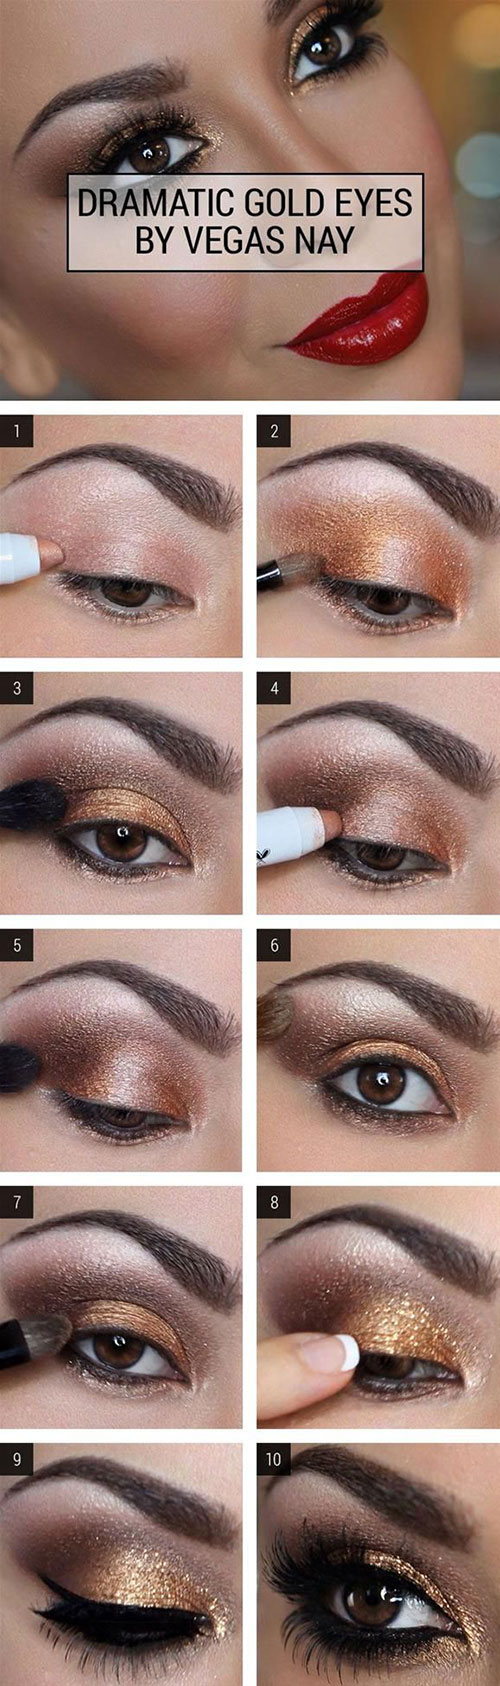 Smokey Eyes Makeup How To Do Smokey Eye Makeup Top 10 Tutorial Pictures For 2019